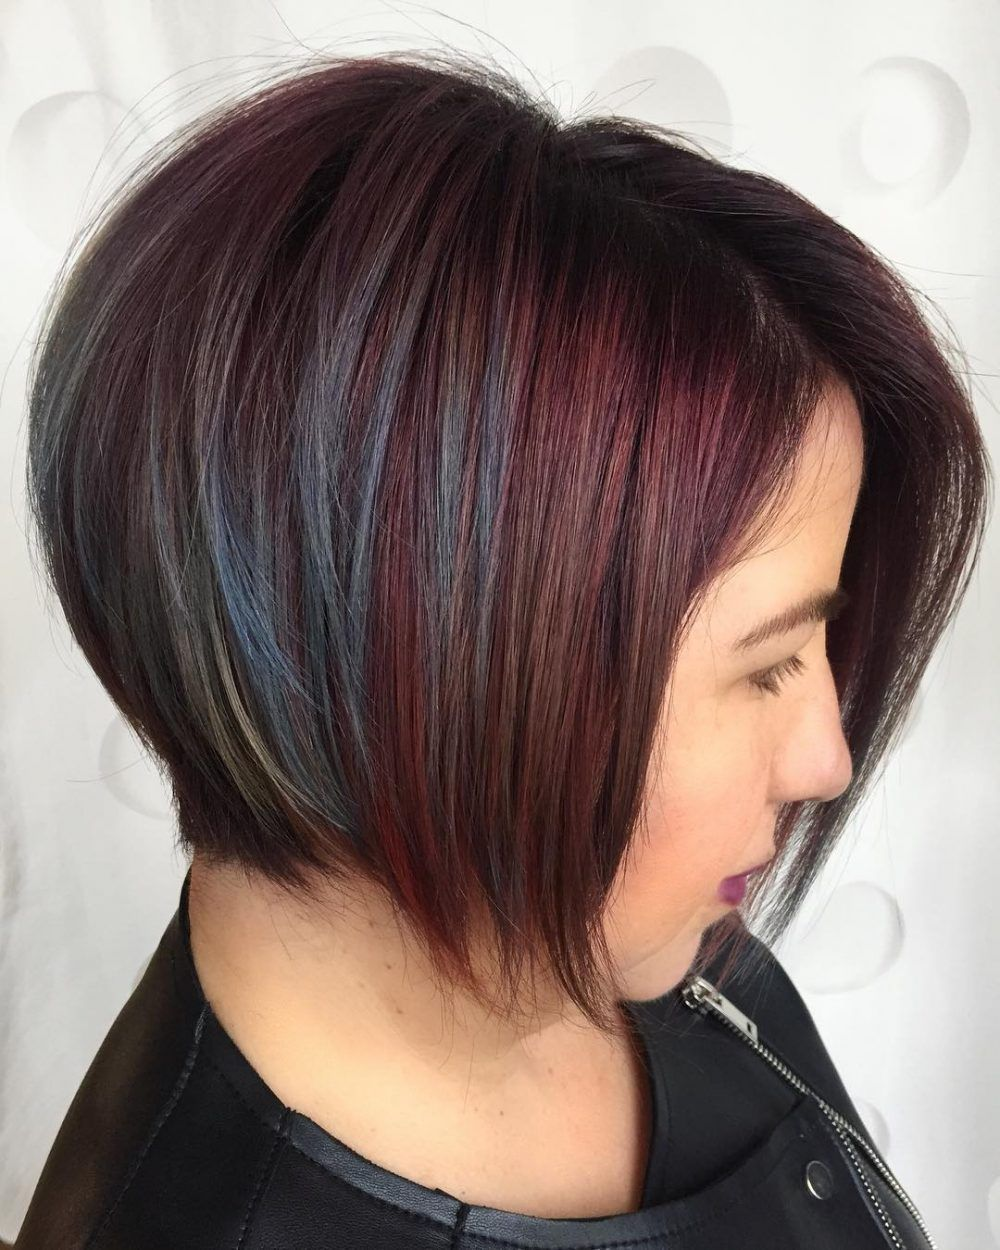 20 best short haircuts hairstyles for thick hair in 2020